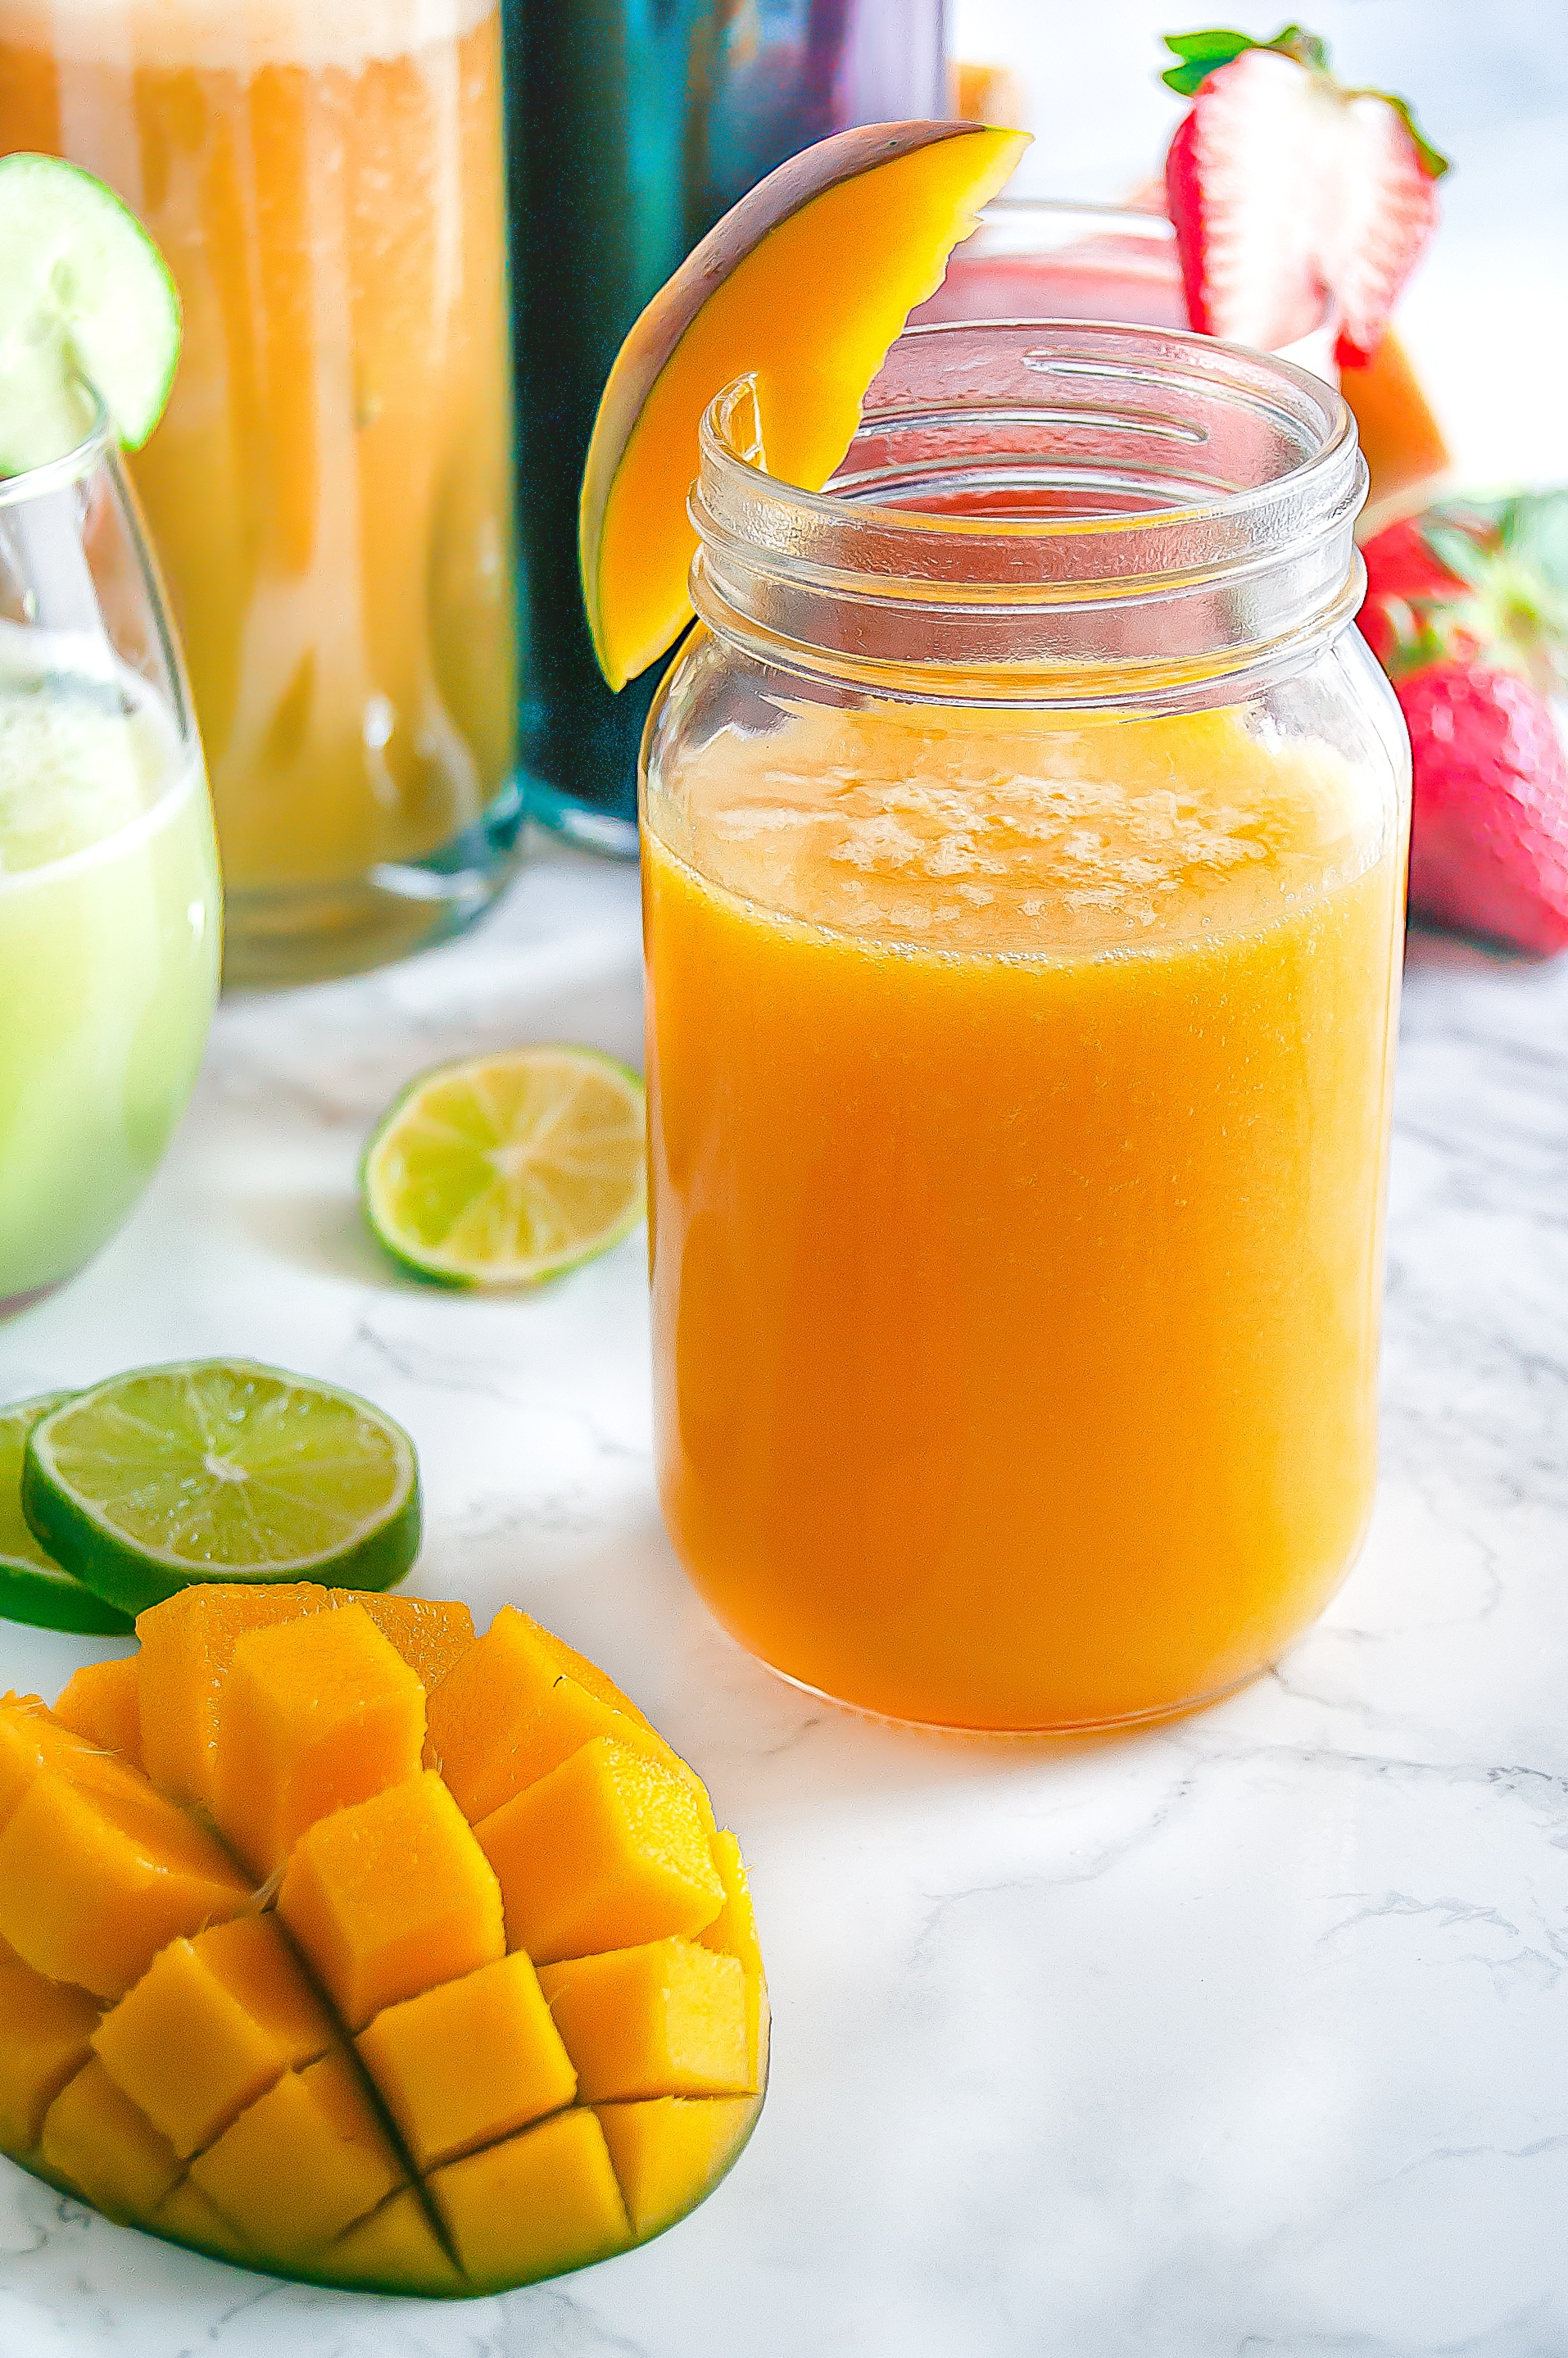 Mango Agua Fresca is a refreshing summer beverage of blended fruit, water, and lime. Perfect for Cinco de Mayo and summertime festivities.